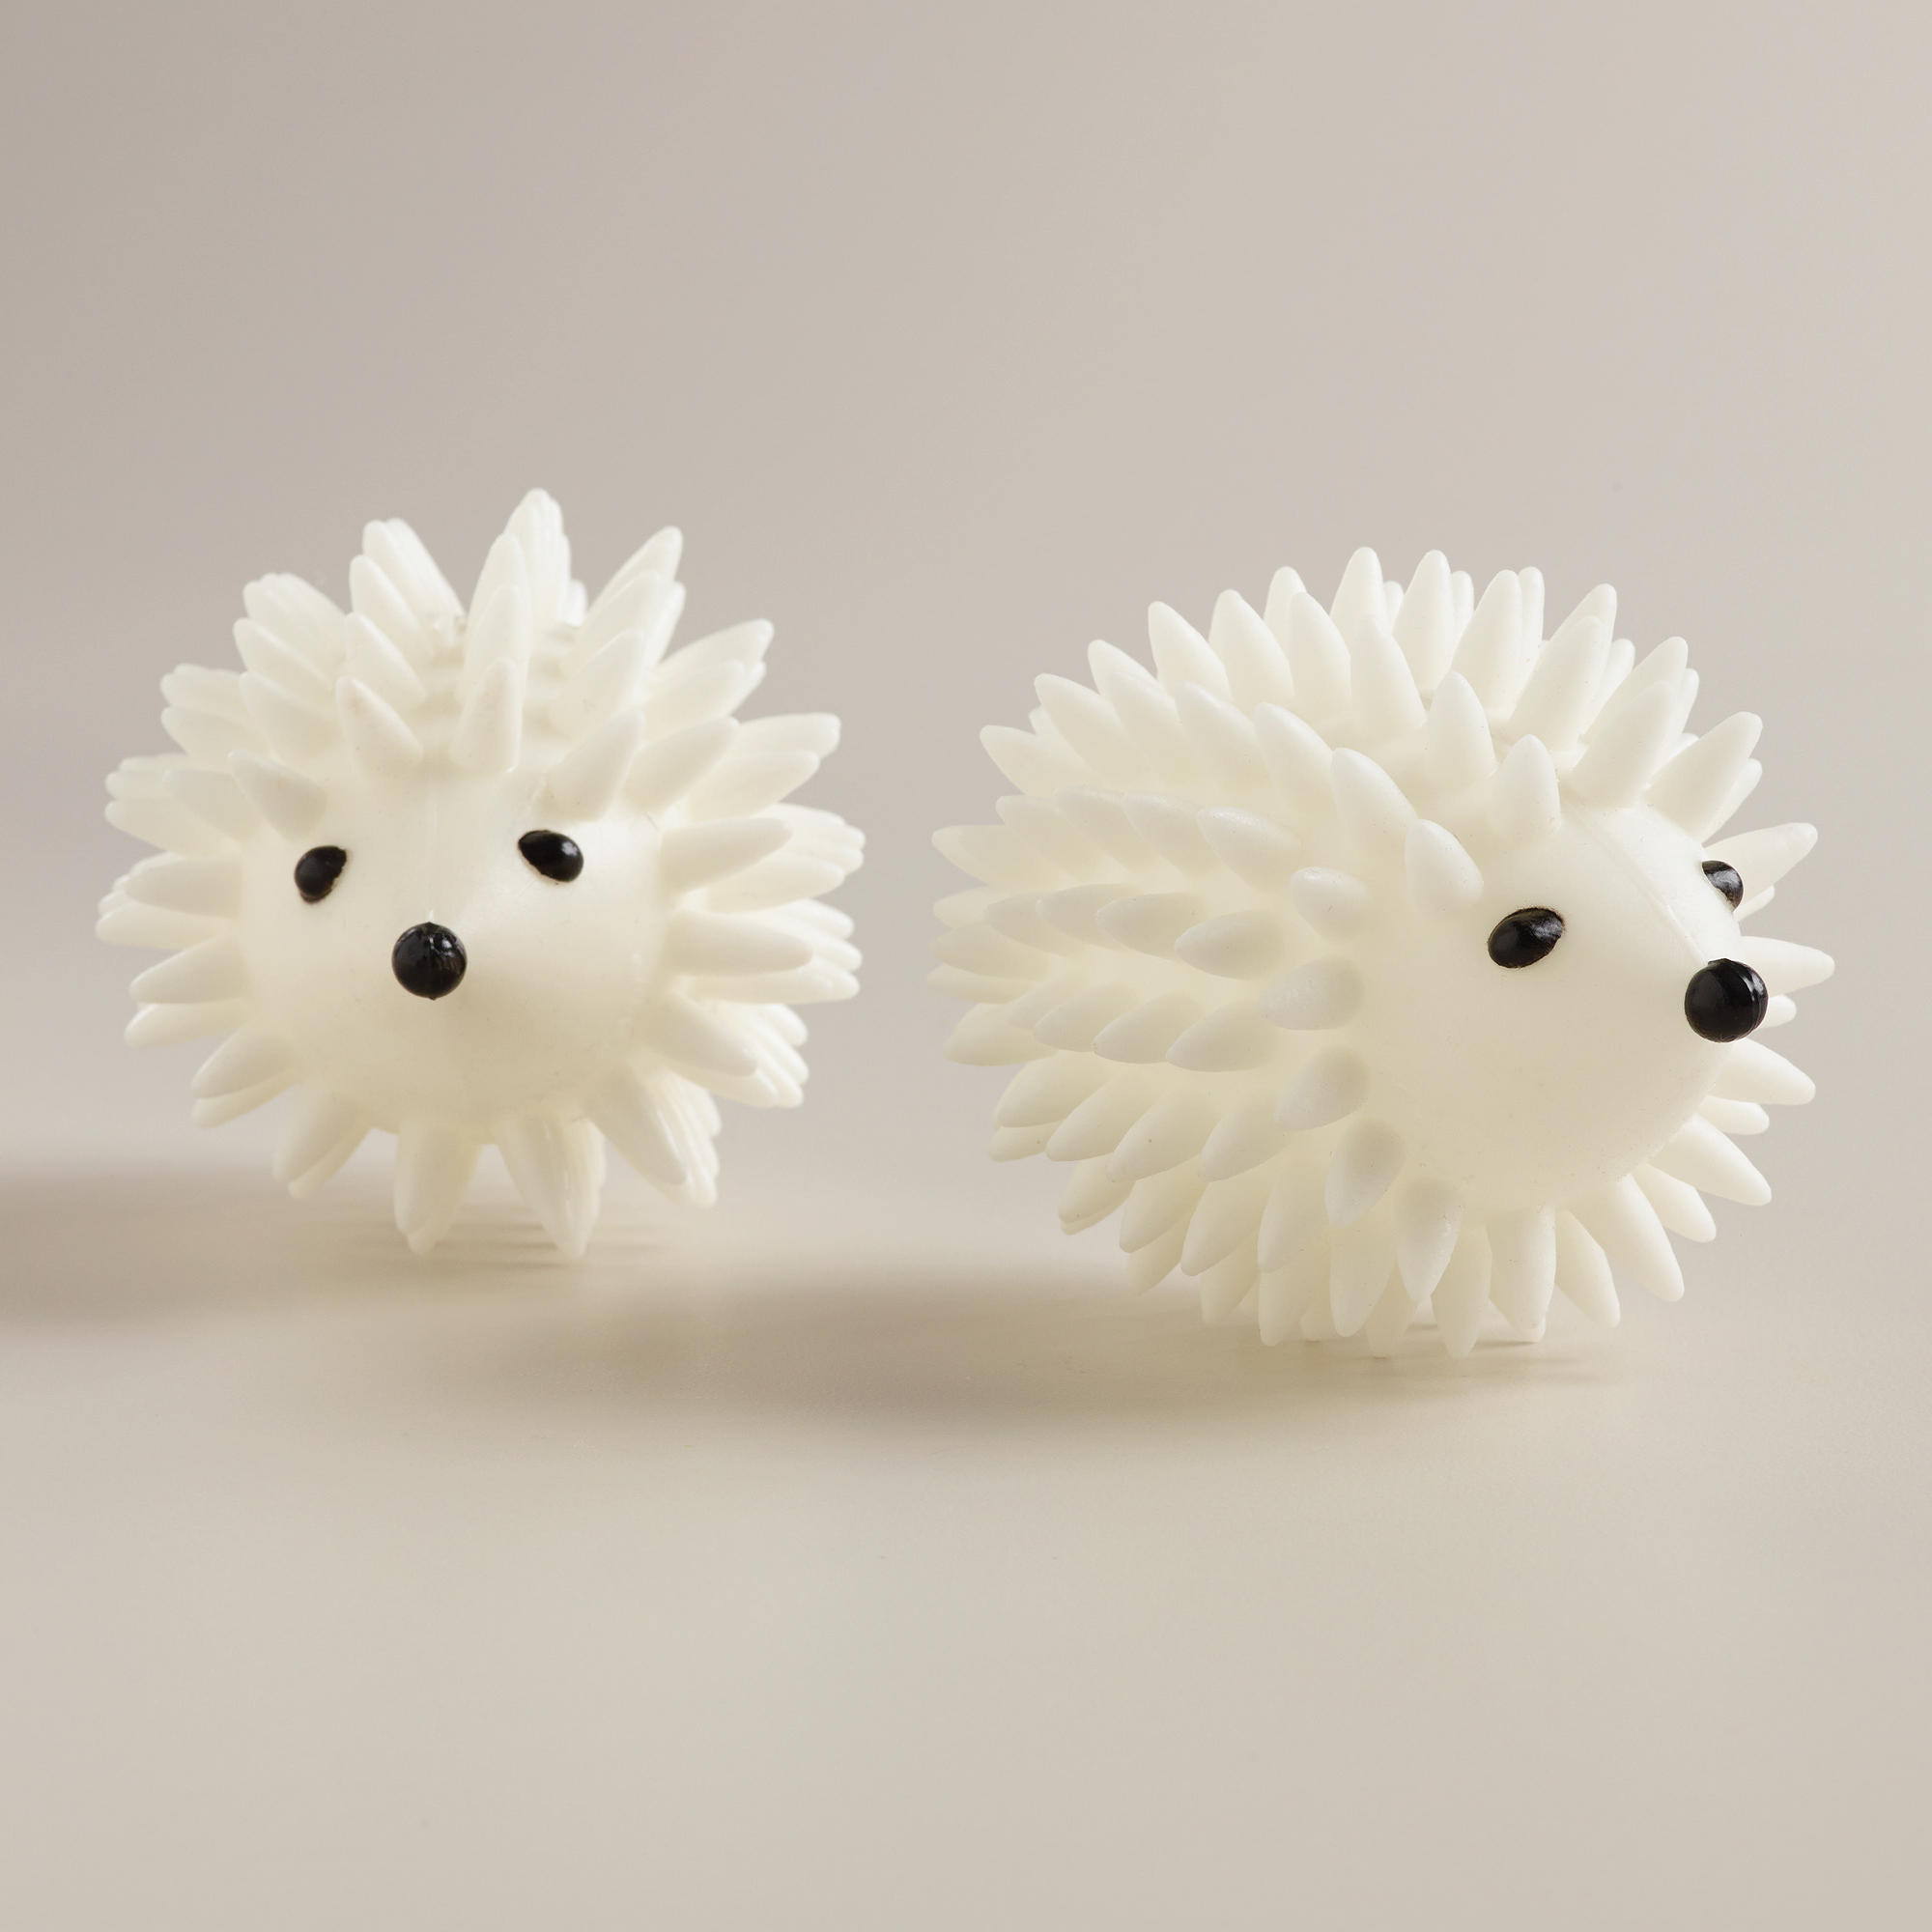 on my laundry list this beautiful day - hedgehog laundry dryer balls